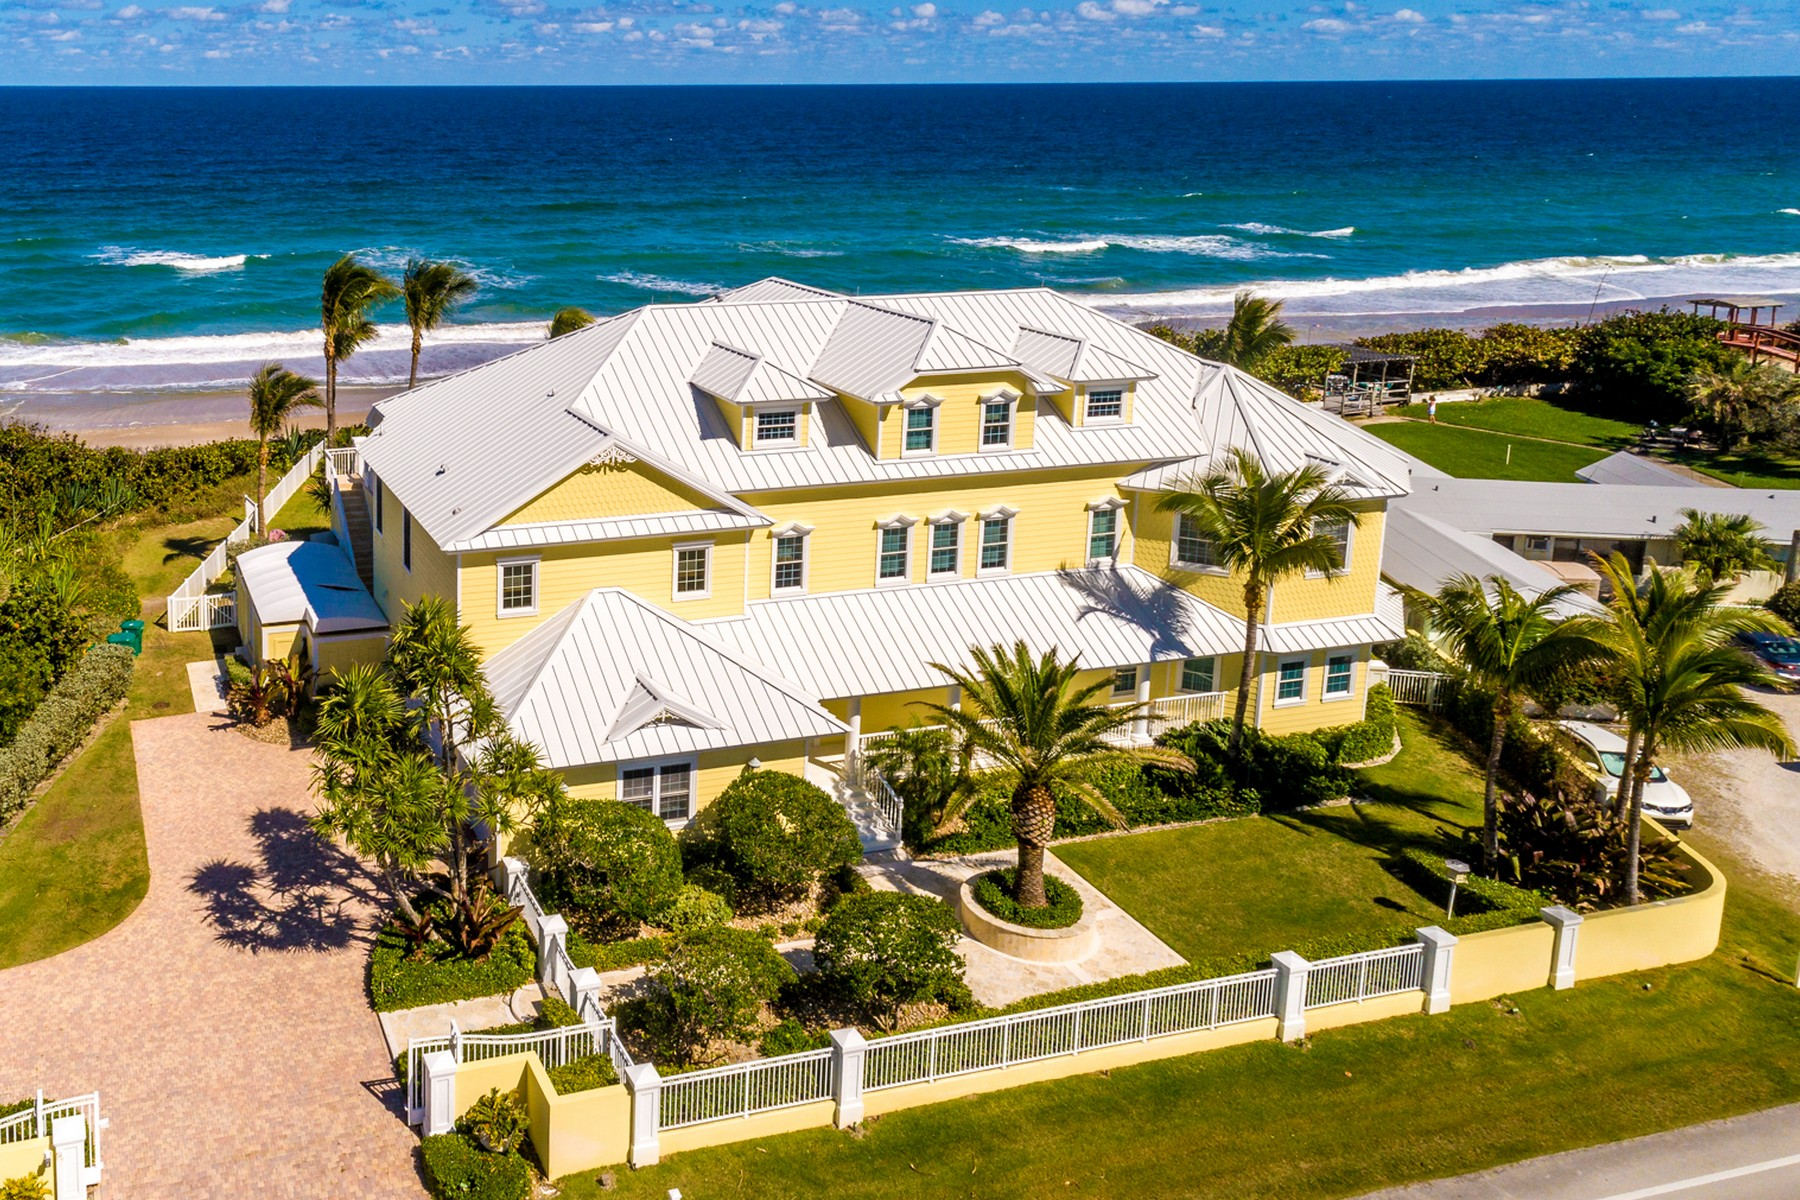 Property para Venda às Gorgeous Tropically Landscaped Home with Endless Ocean Vistas 5045 S Highway A1A Melbourne Beach, Florida 32951 Estados Unidos